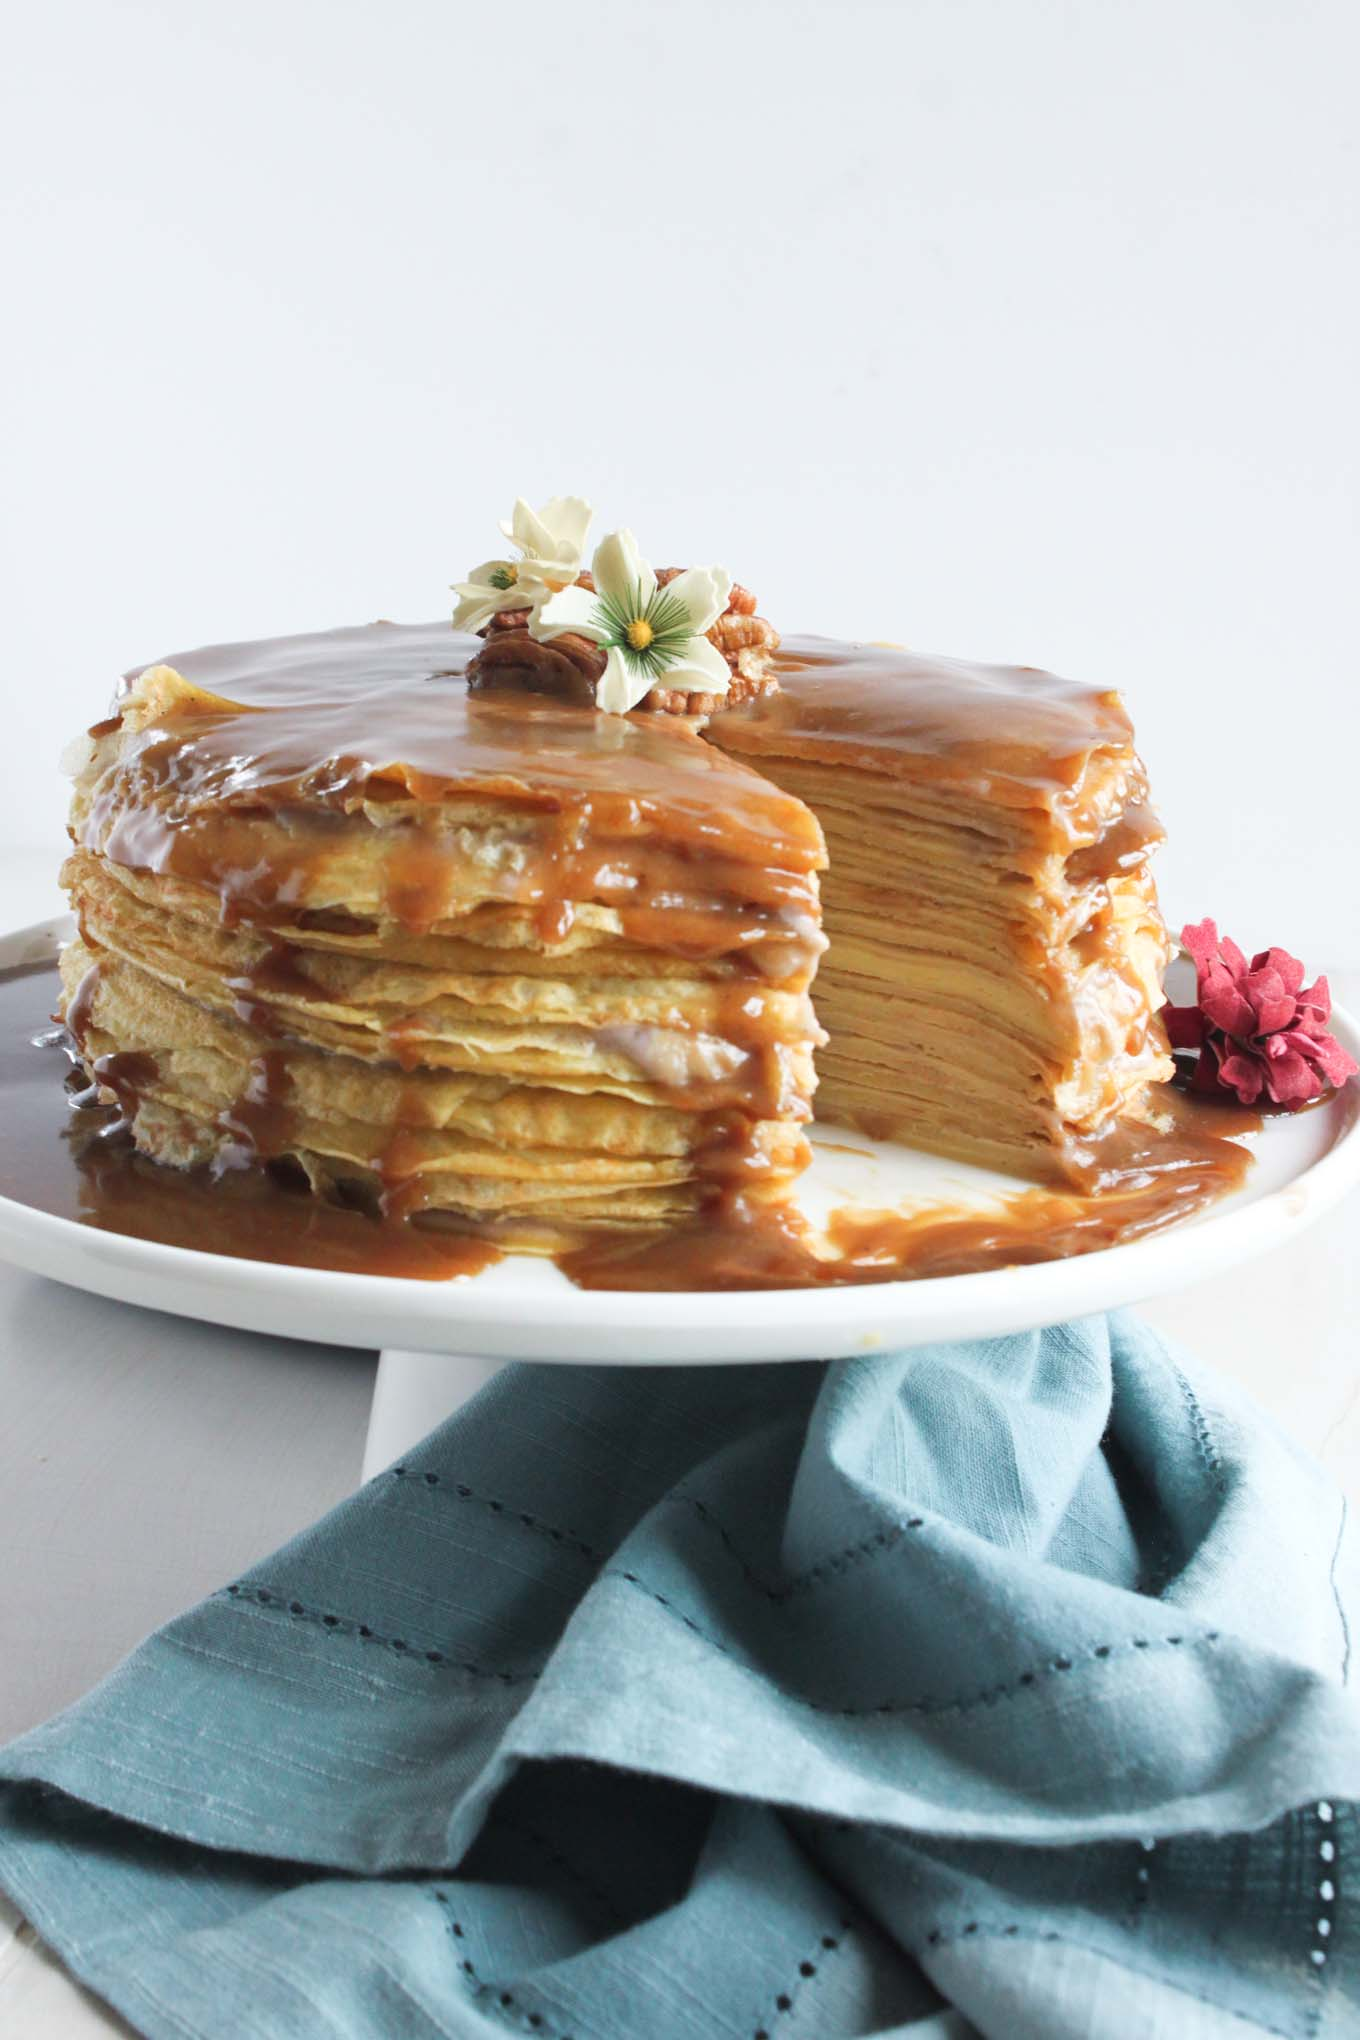 ... layers of slightly sweet crepes held together with banana cream